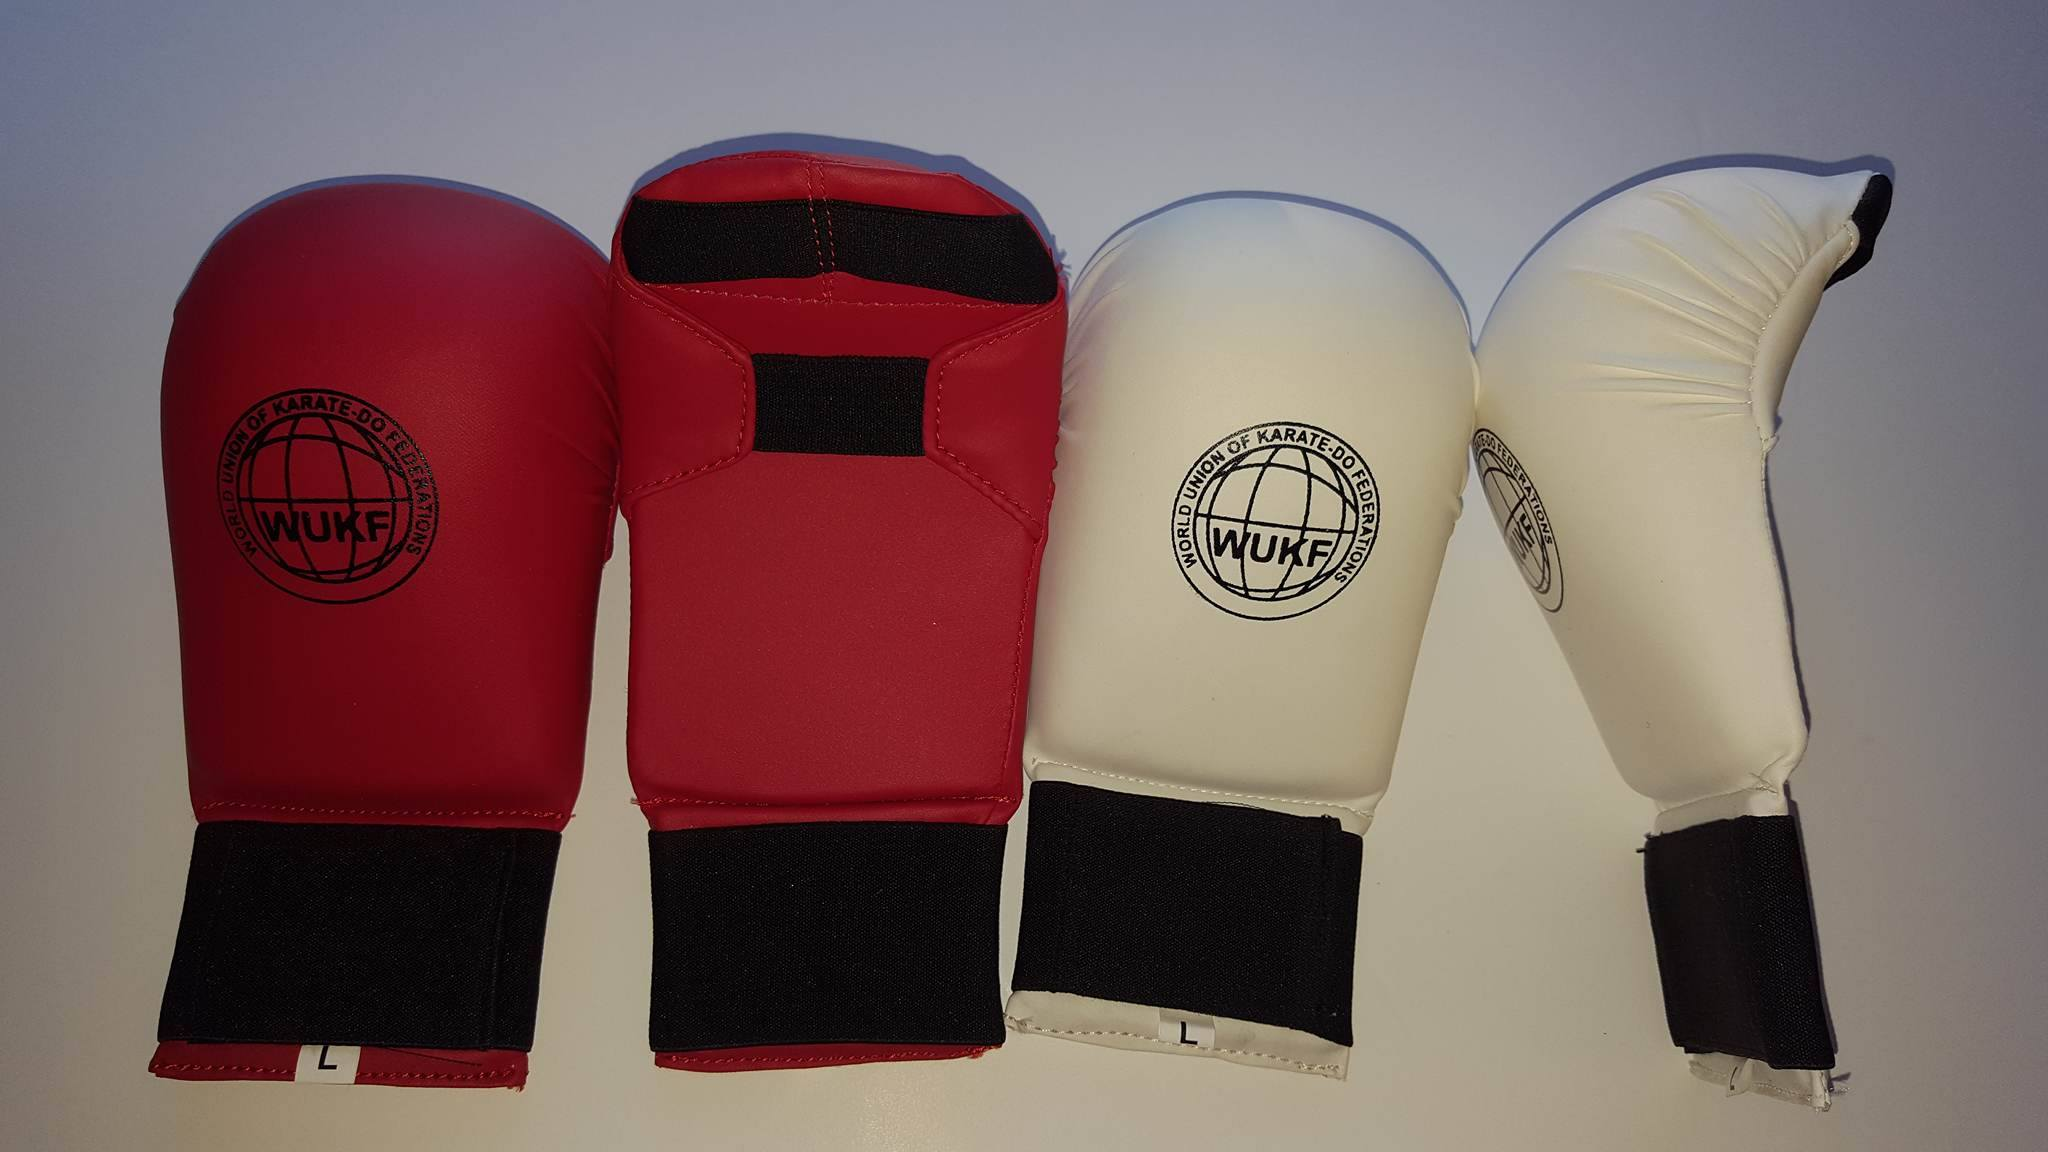 WUKF Approved Mitts